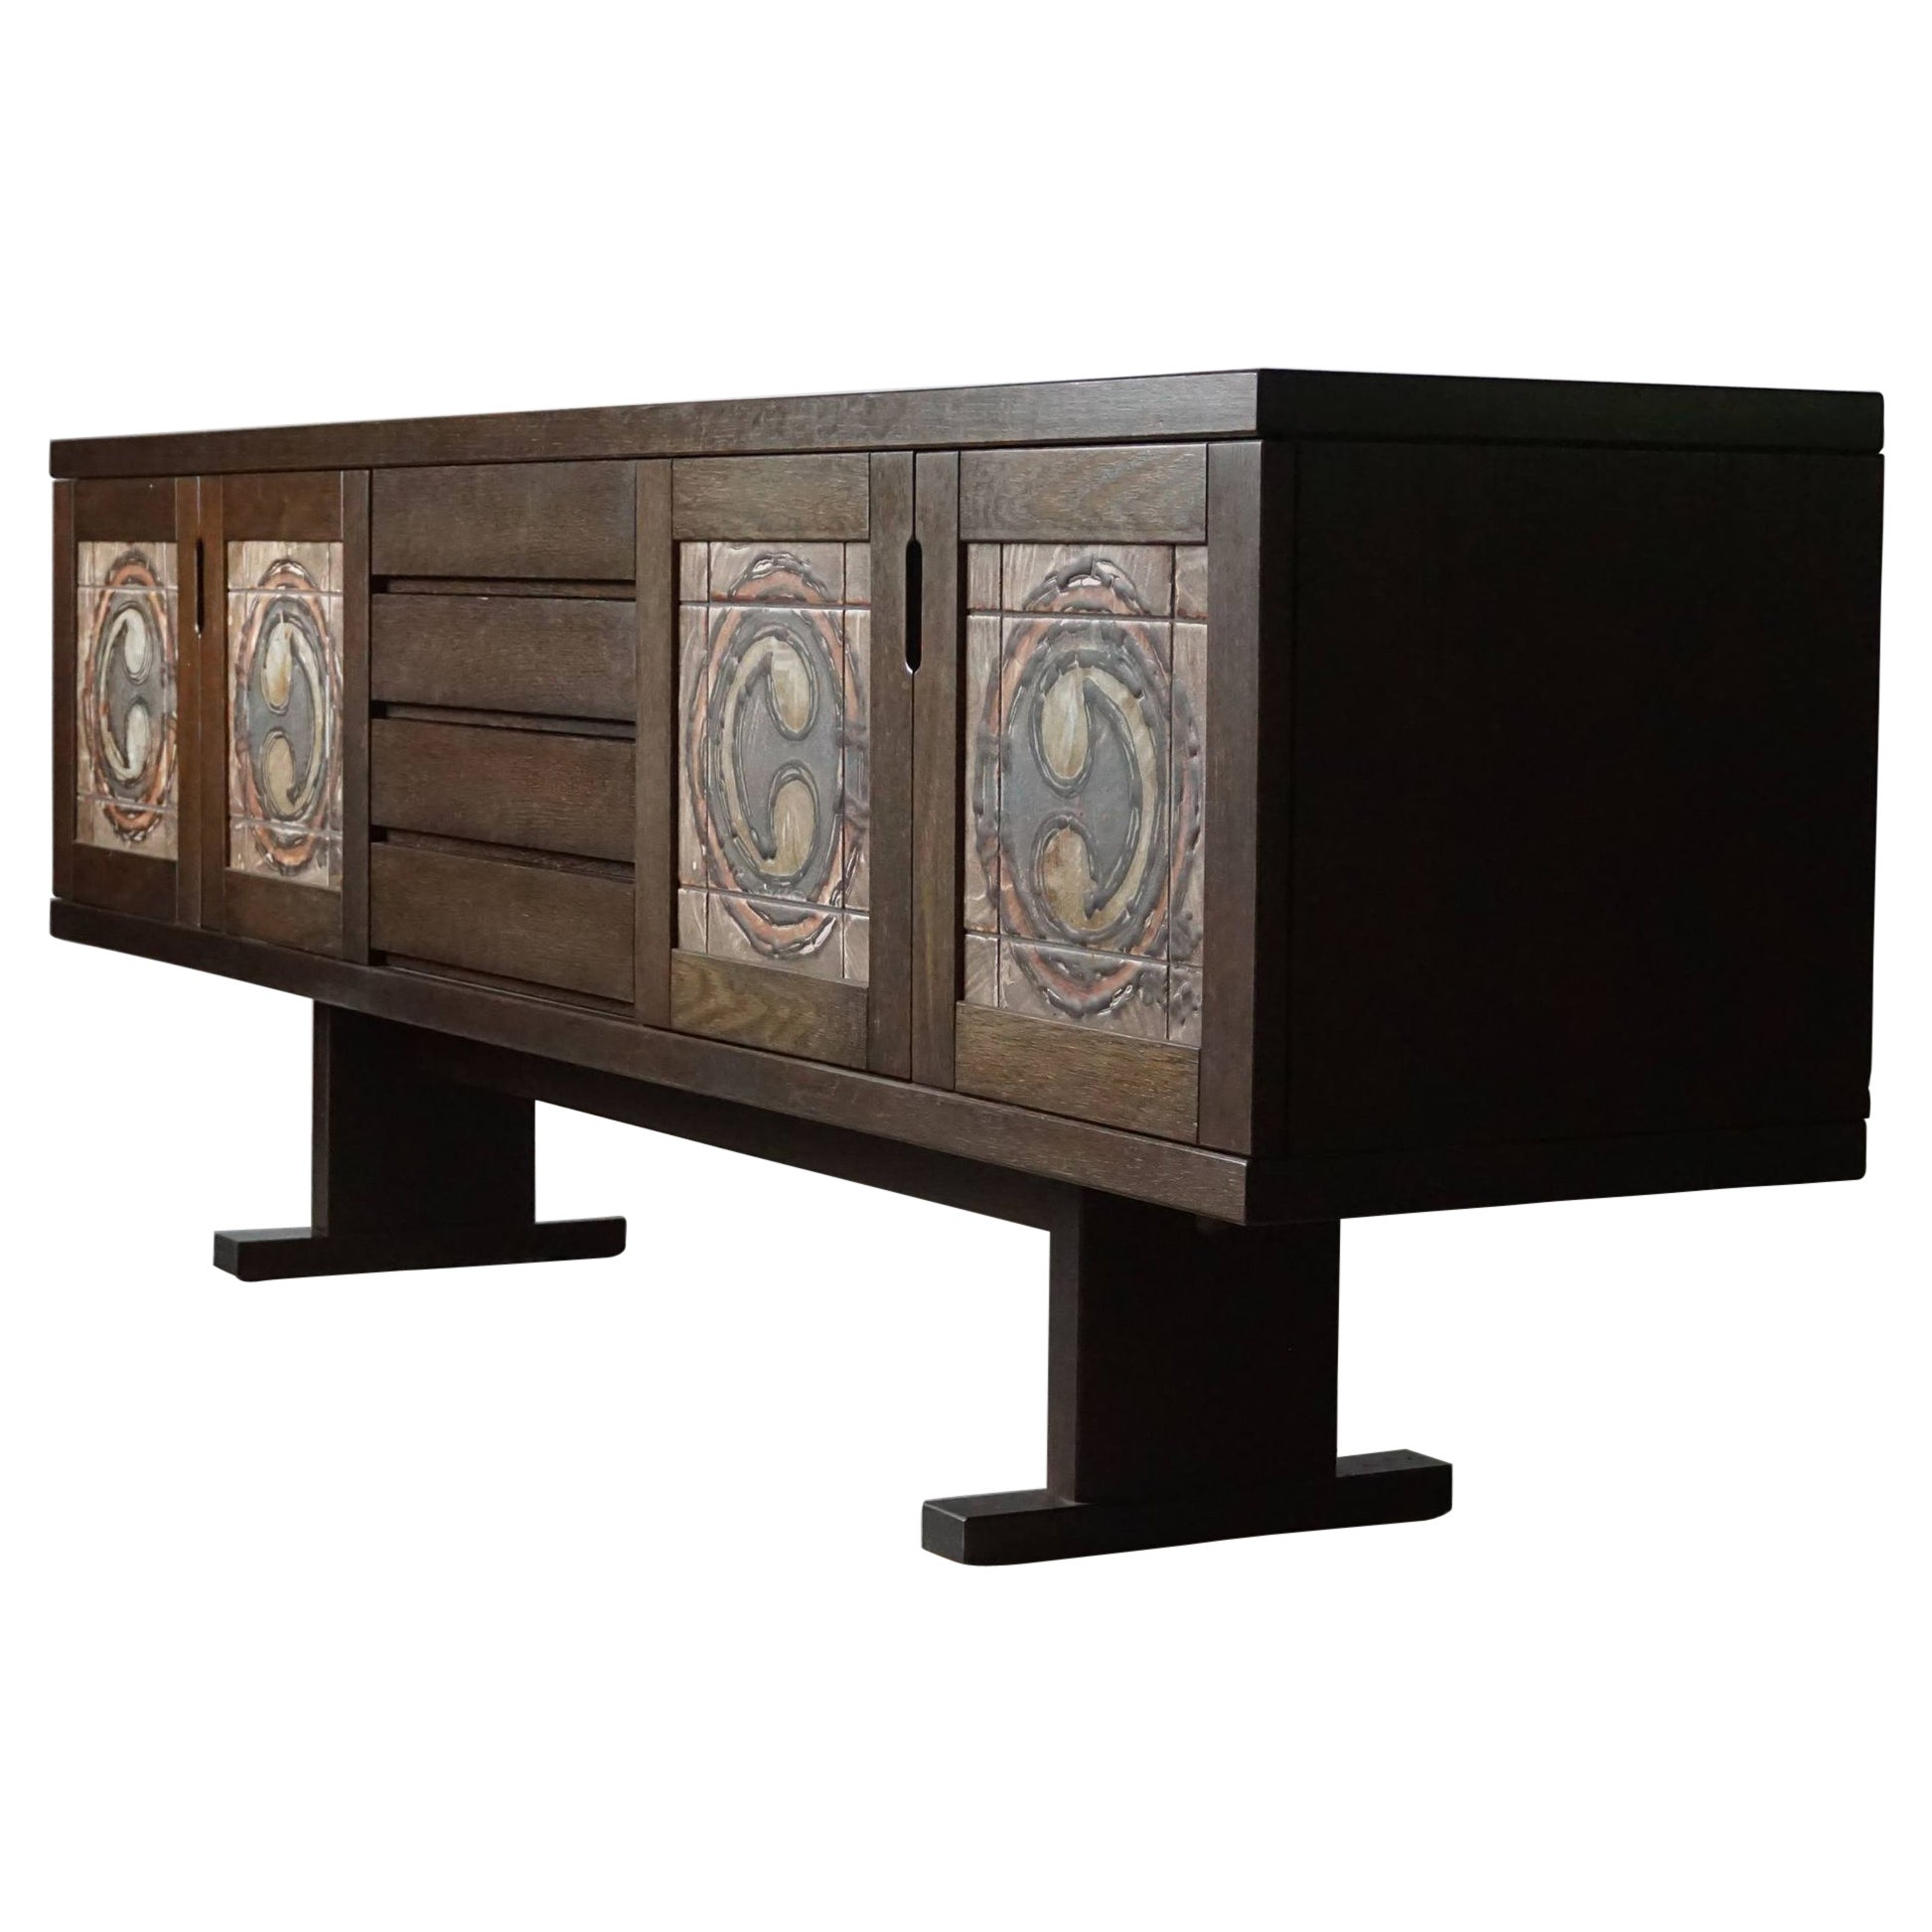 Danish Modern Low Sideboard in Oak and with Ceramic Front, Made by Skovby, 1970s